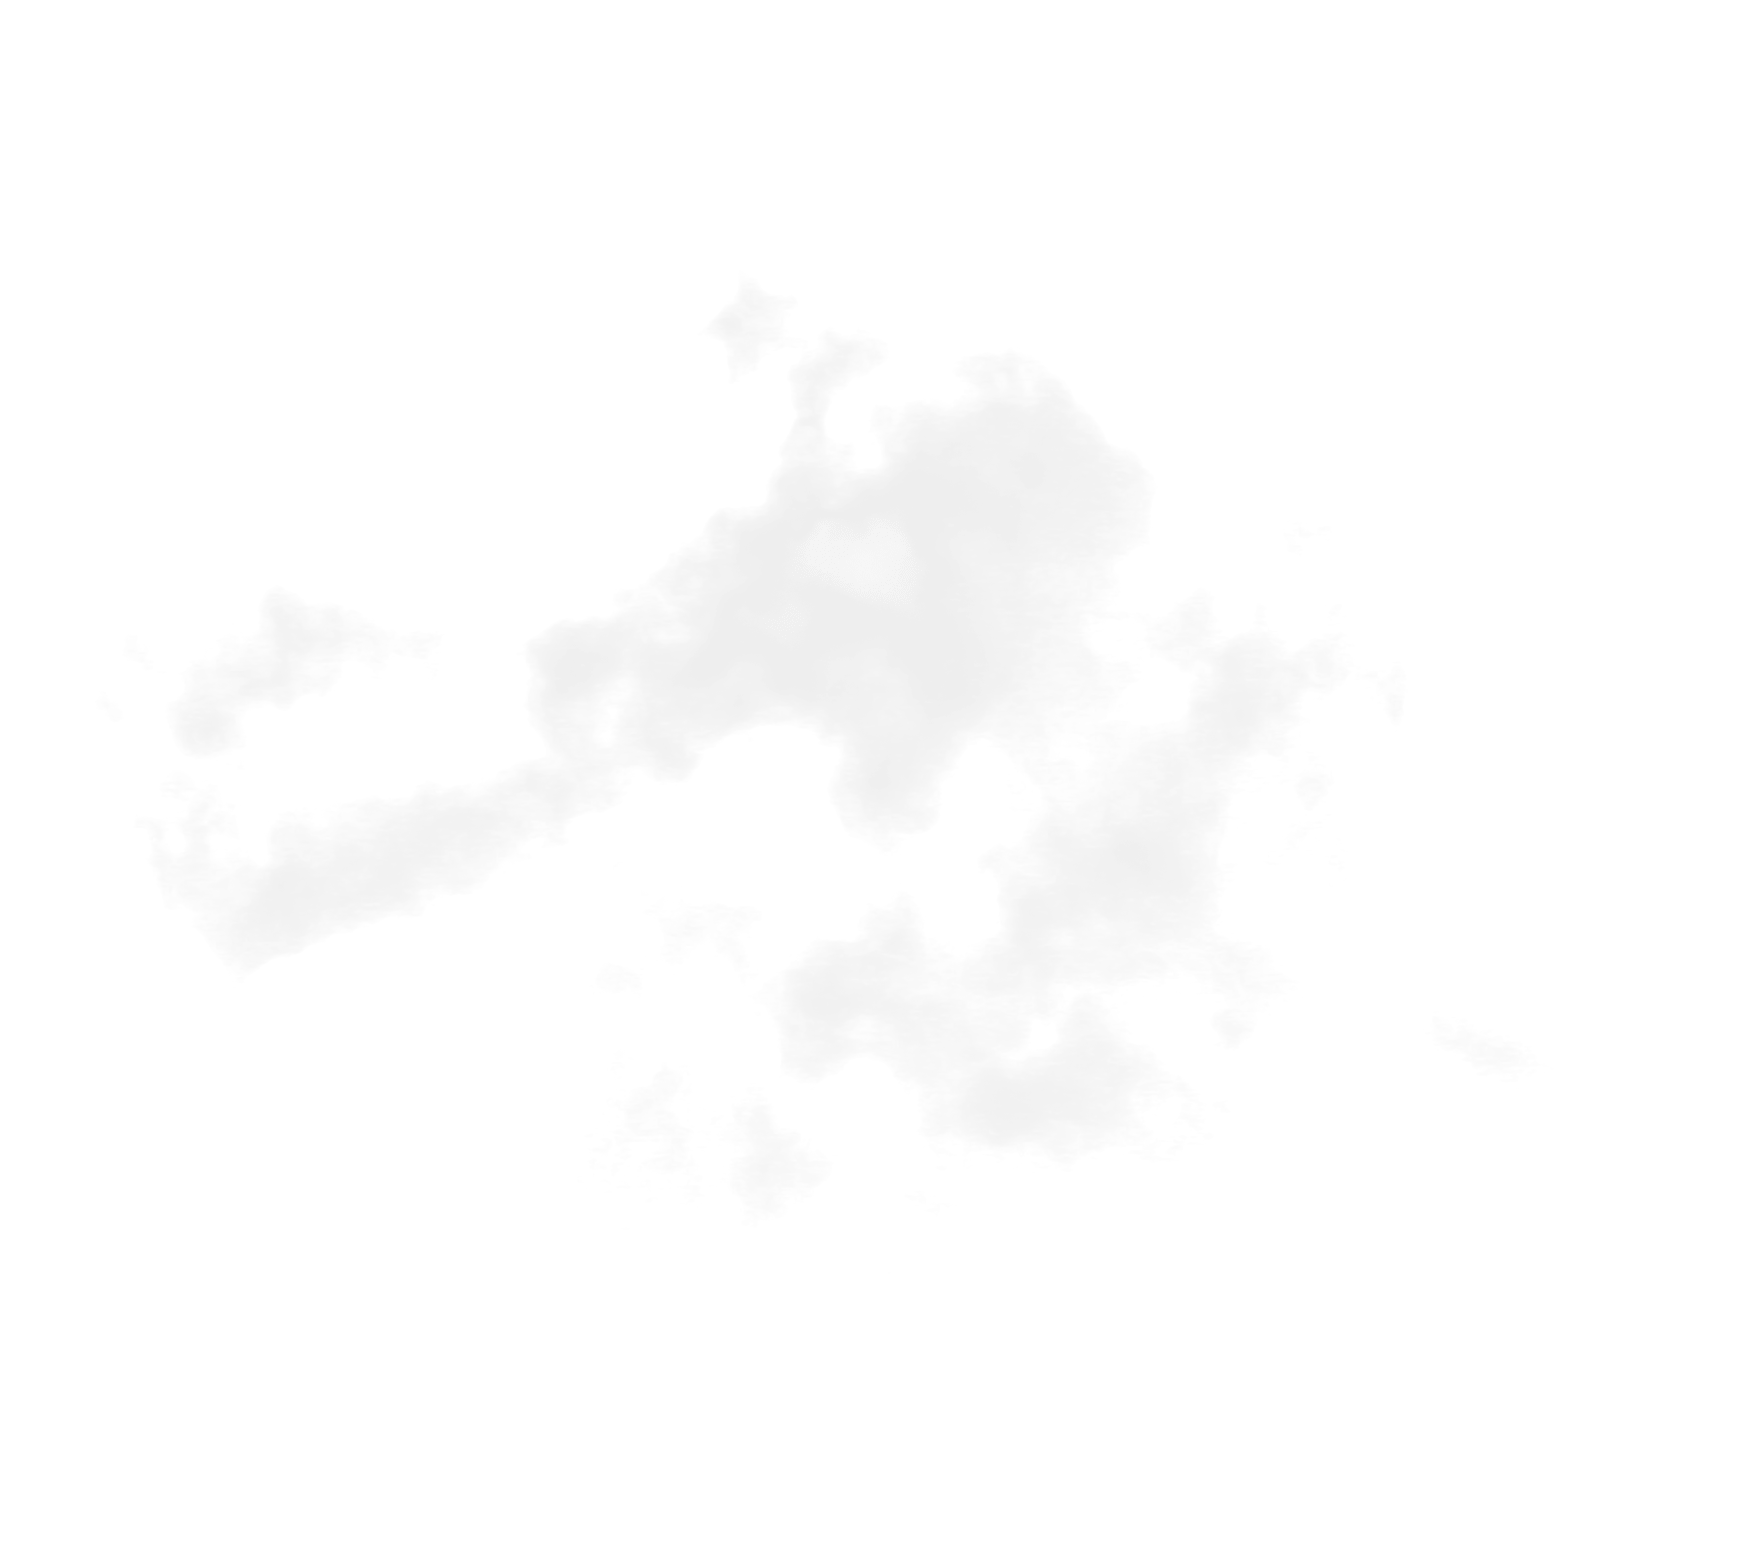 Smoke texture png. Clouds images cloud picture